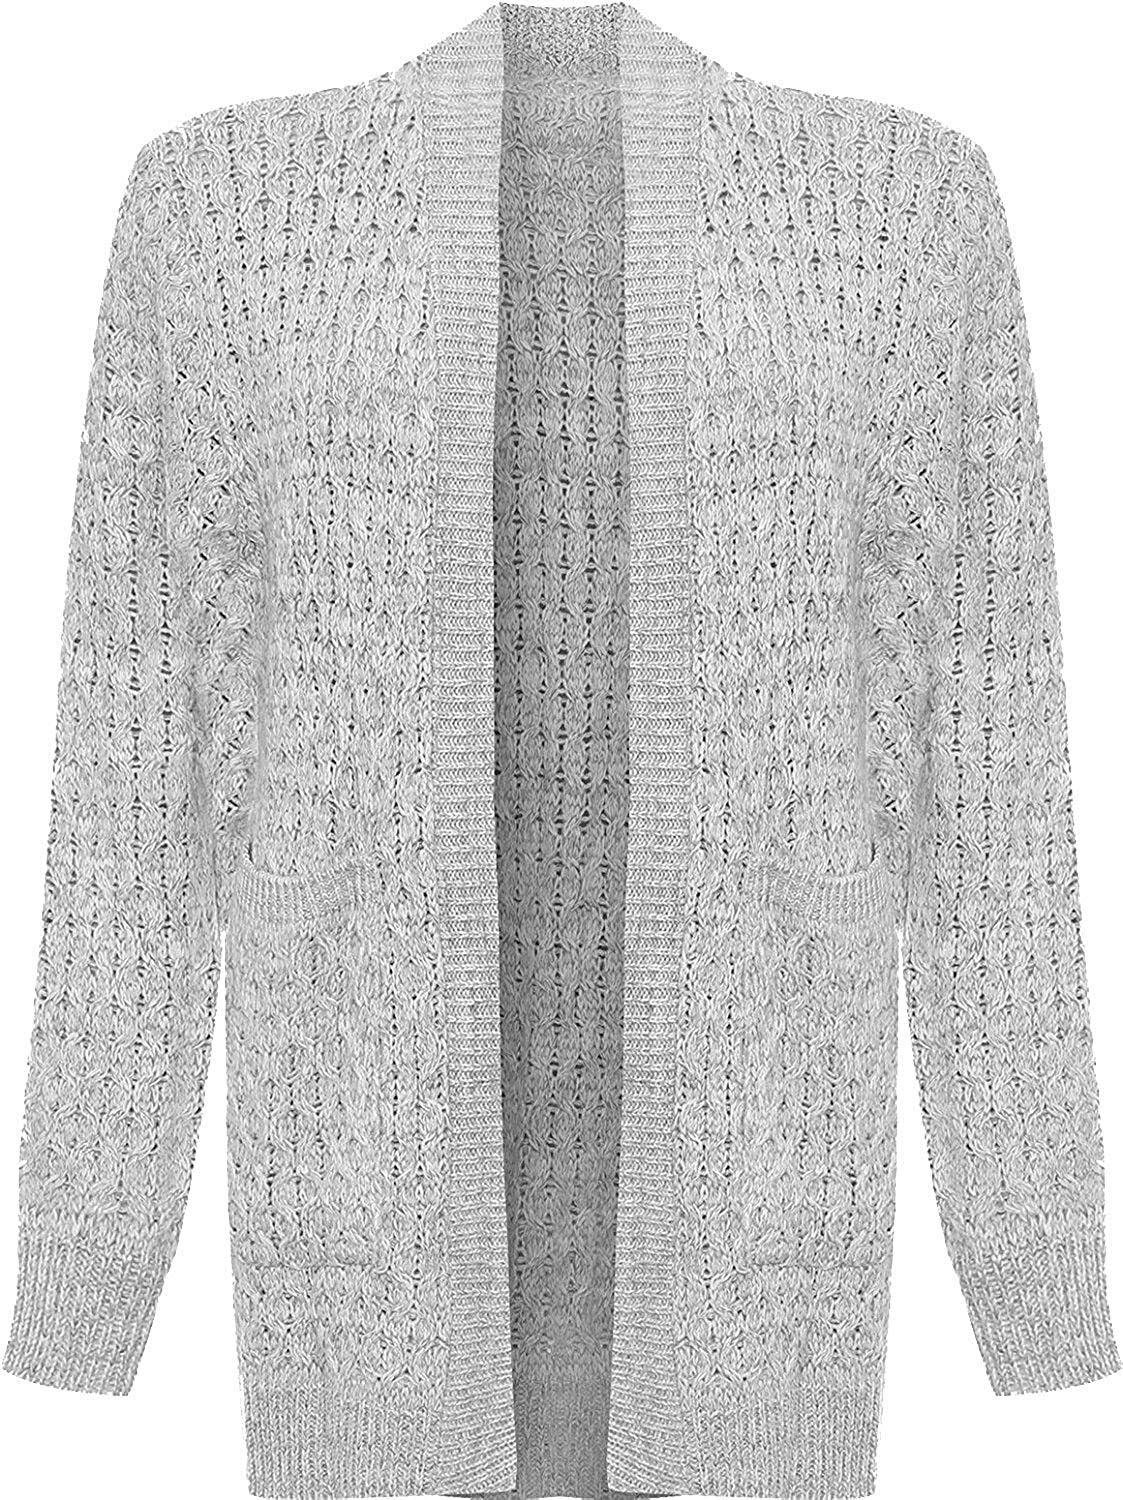 Rimi Hanger Womens Open Front Boyfriend Cable Knitted Cardigan Ladies Front Pocket Long Top S/3XL